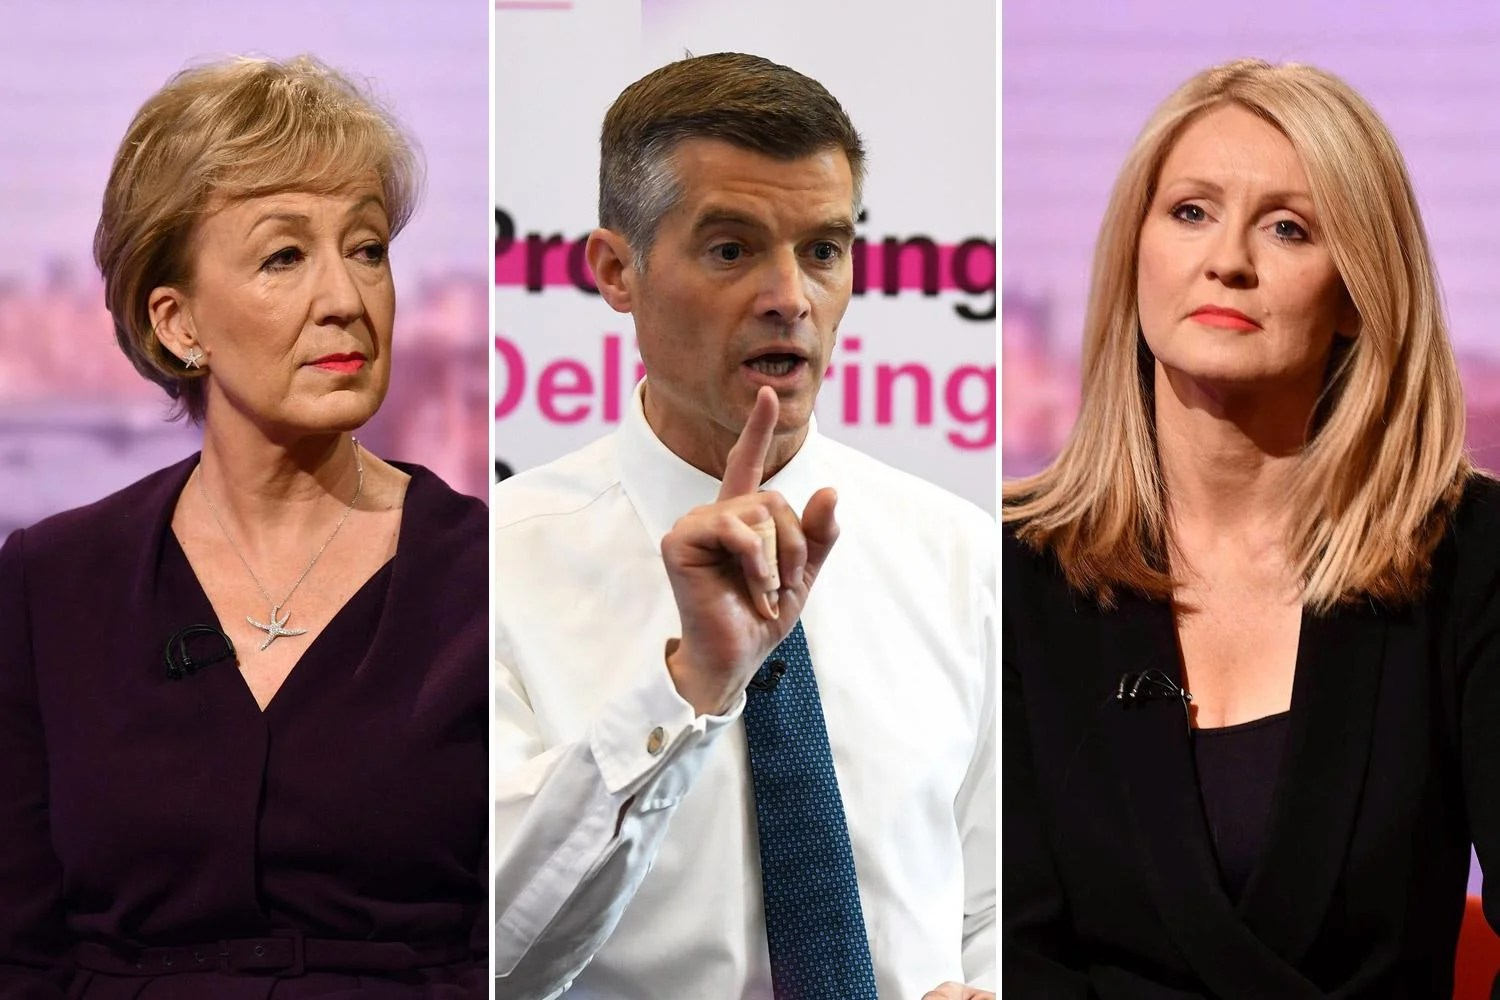 leadsomharpermcvey1306a Mark Harper, Esther McVey and Andrea Leadsom become first MPs to be dumped out of Tory leadership race as Boris Johnson tops poll